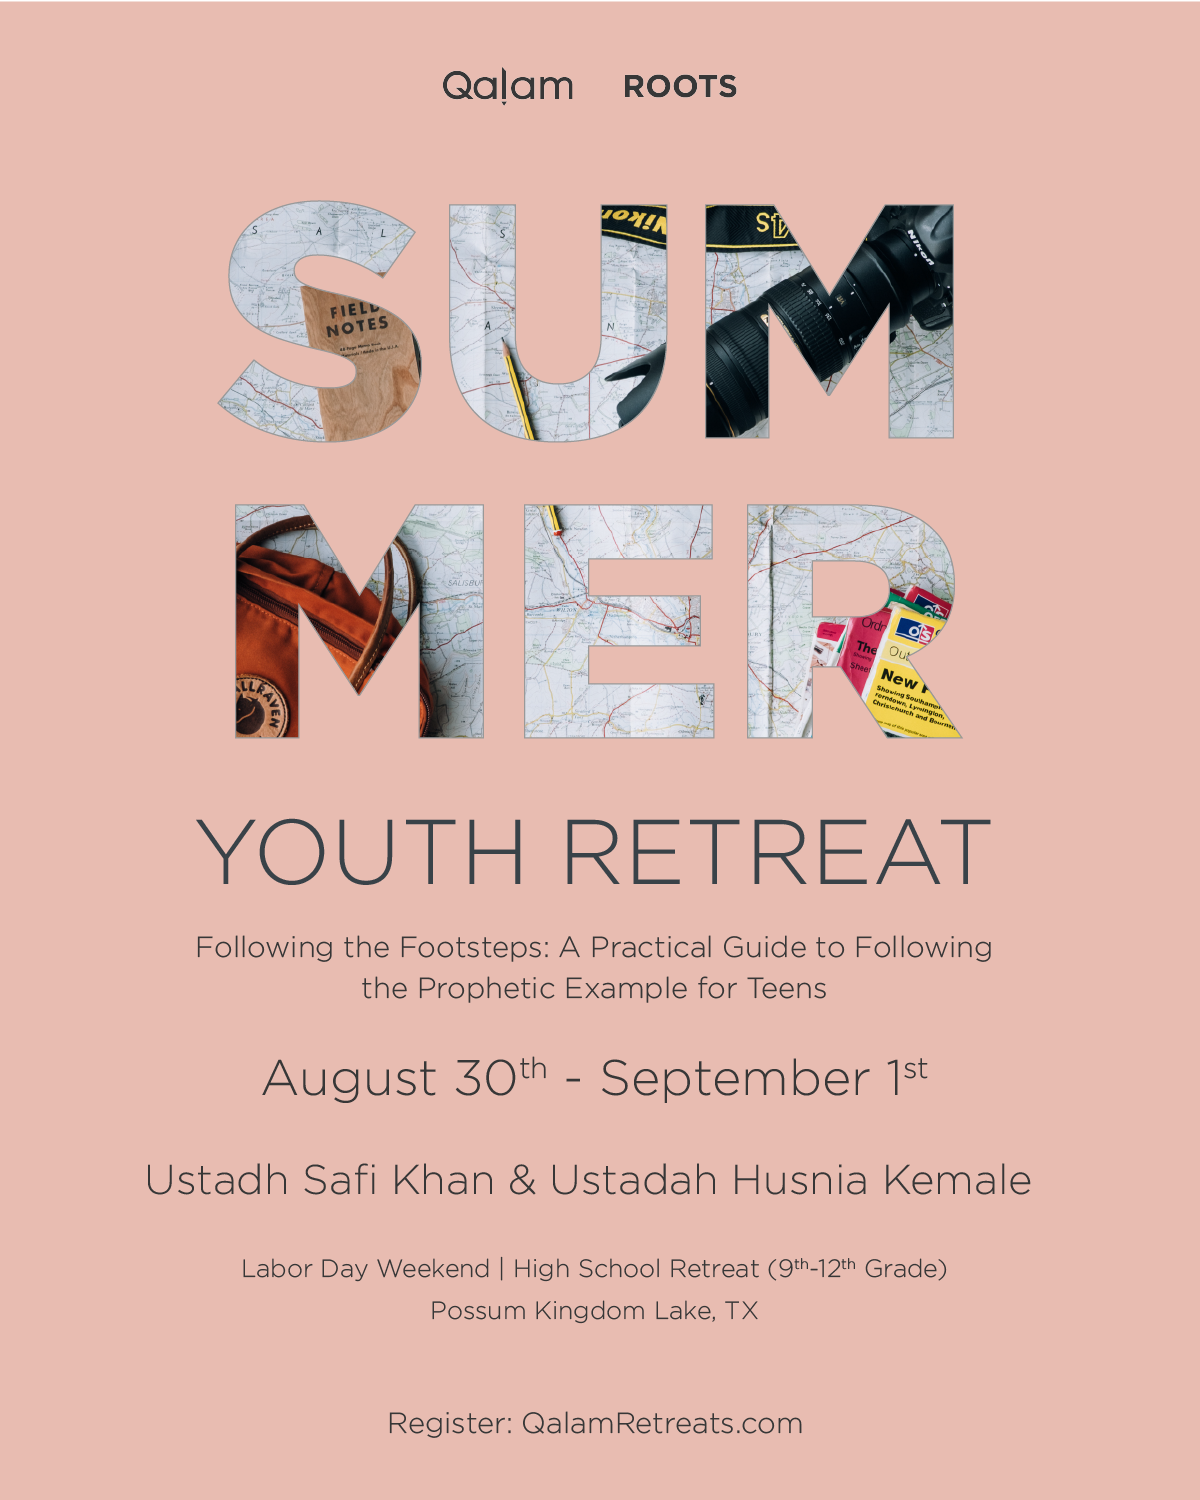 qalam-youth-retreat-01.png